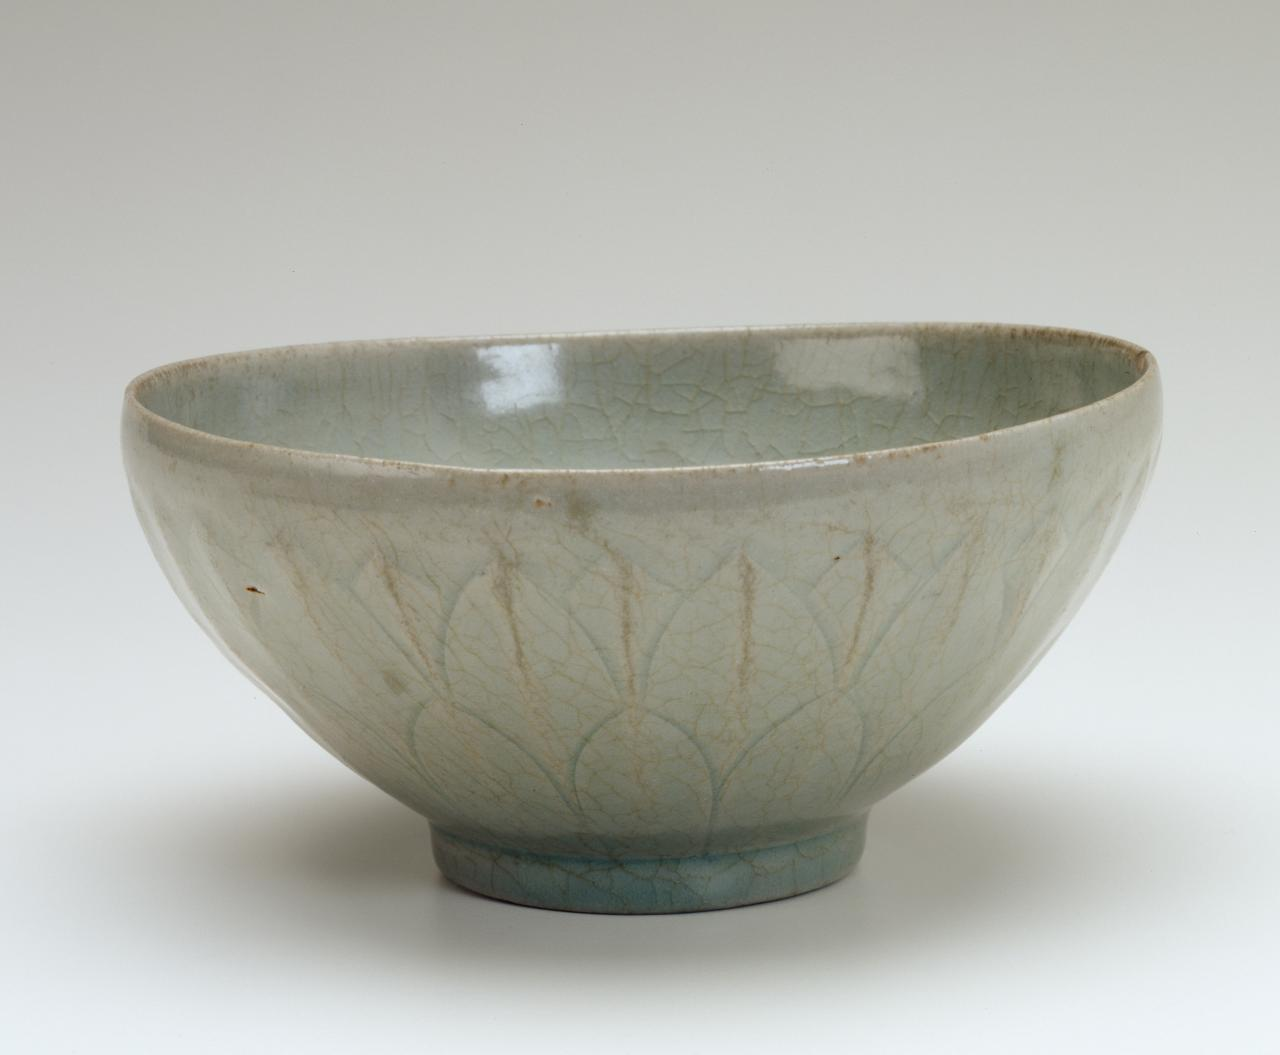 Bowl with incised lotus flower design